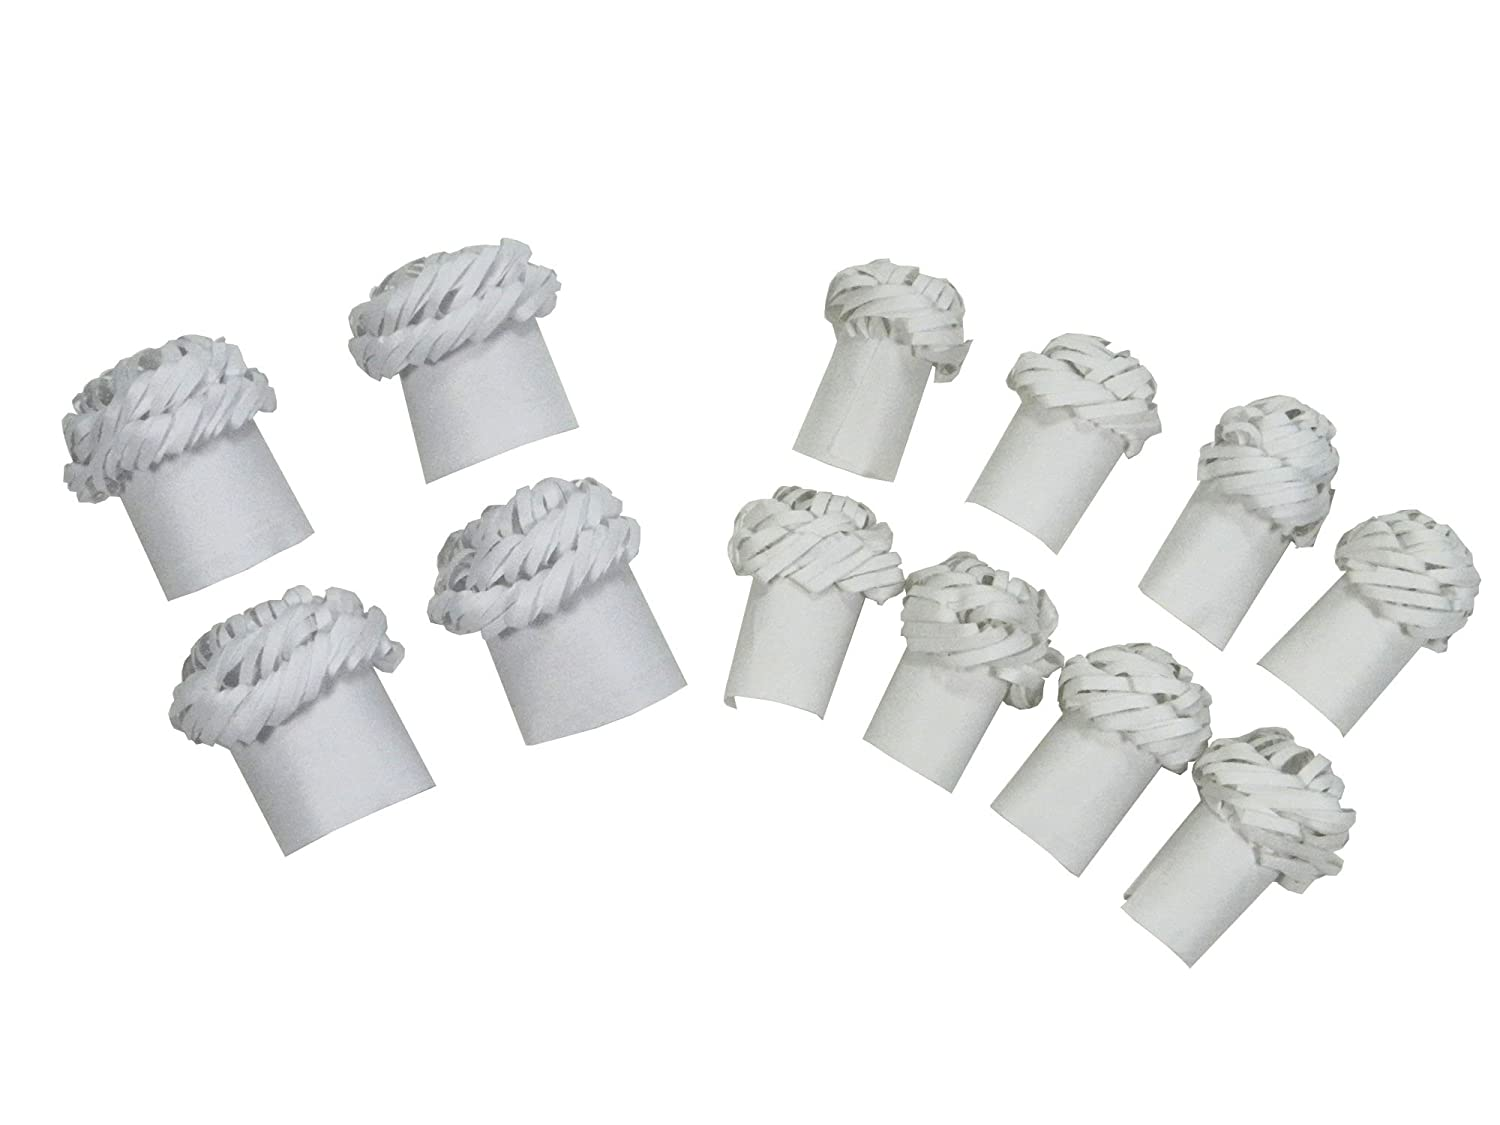 Regency Wraps Chop Frills Decorative Holders for Chops and Chicken Legs, 4 Chicken Frills and 8 Chops Frills RW1550